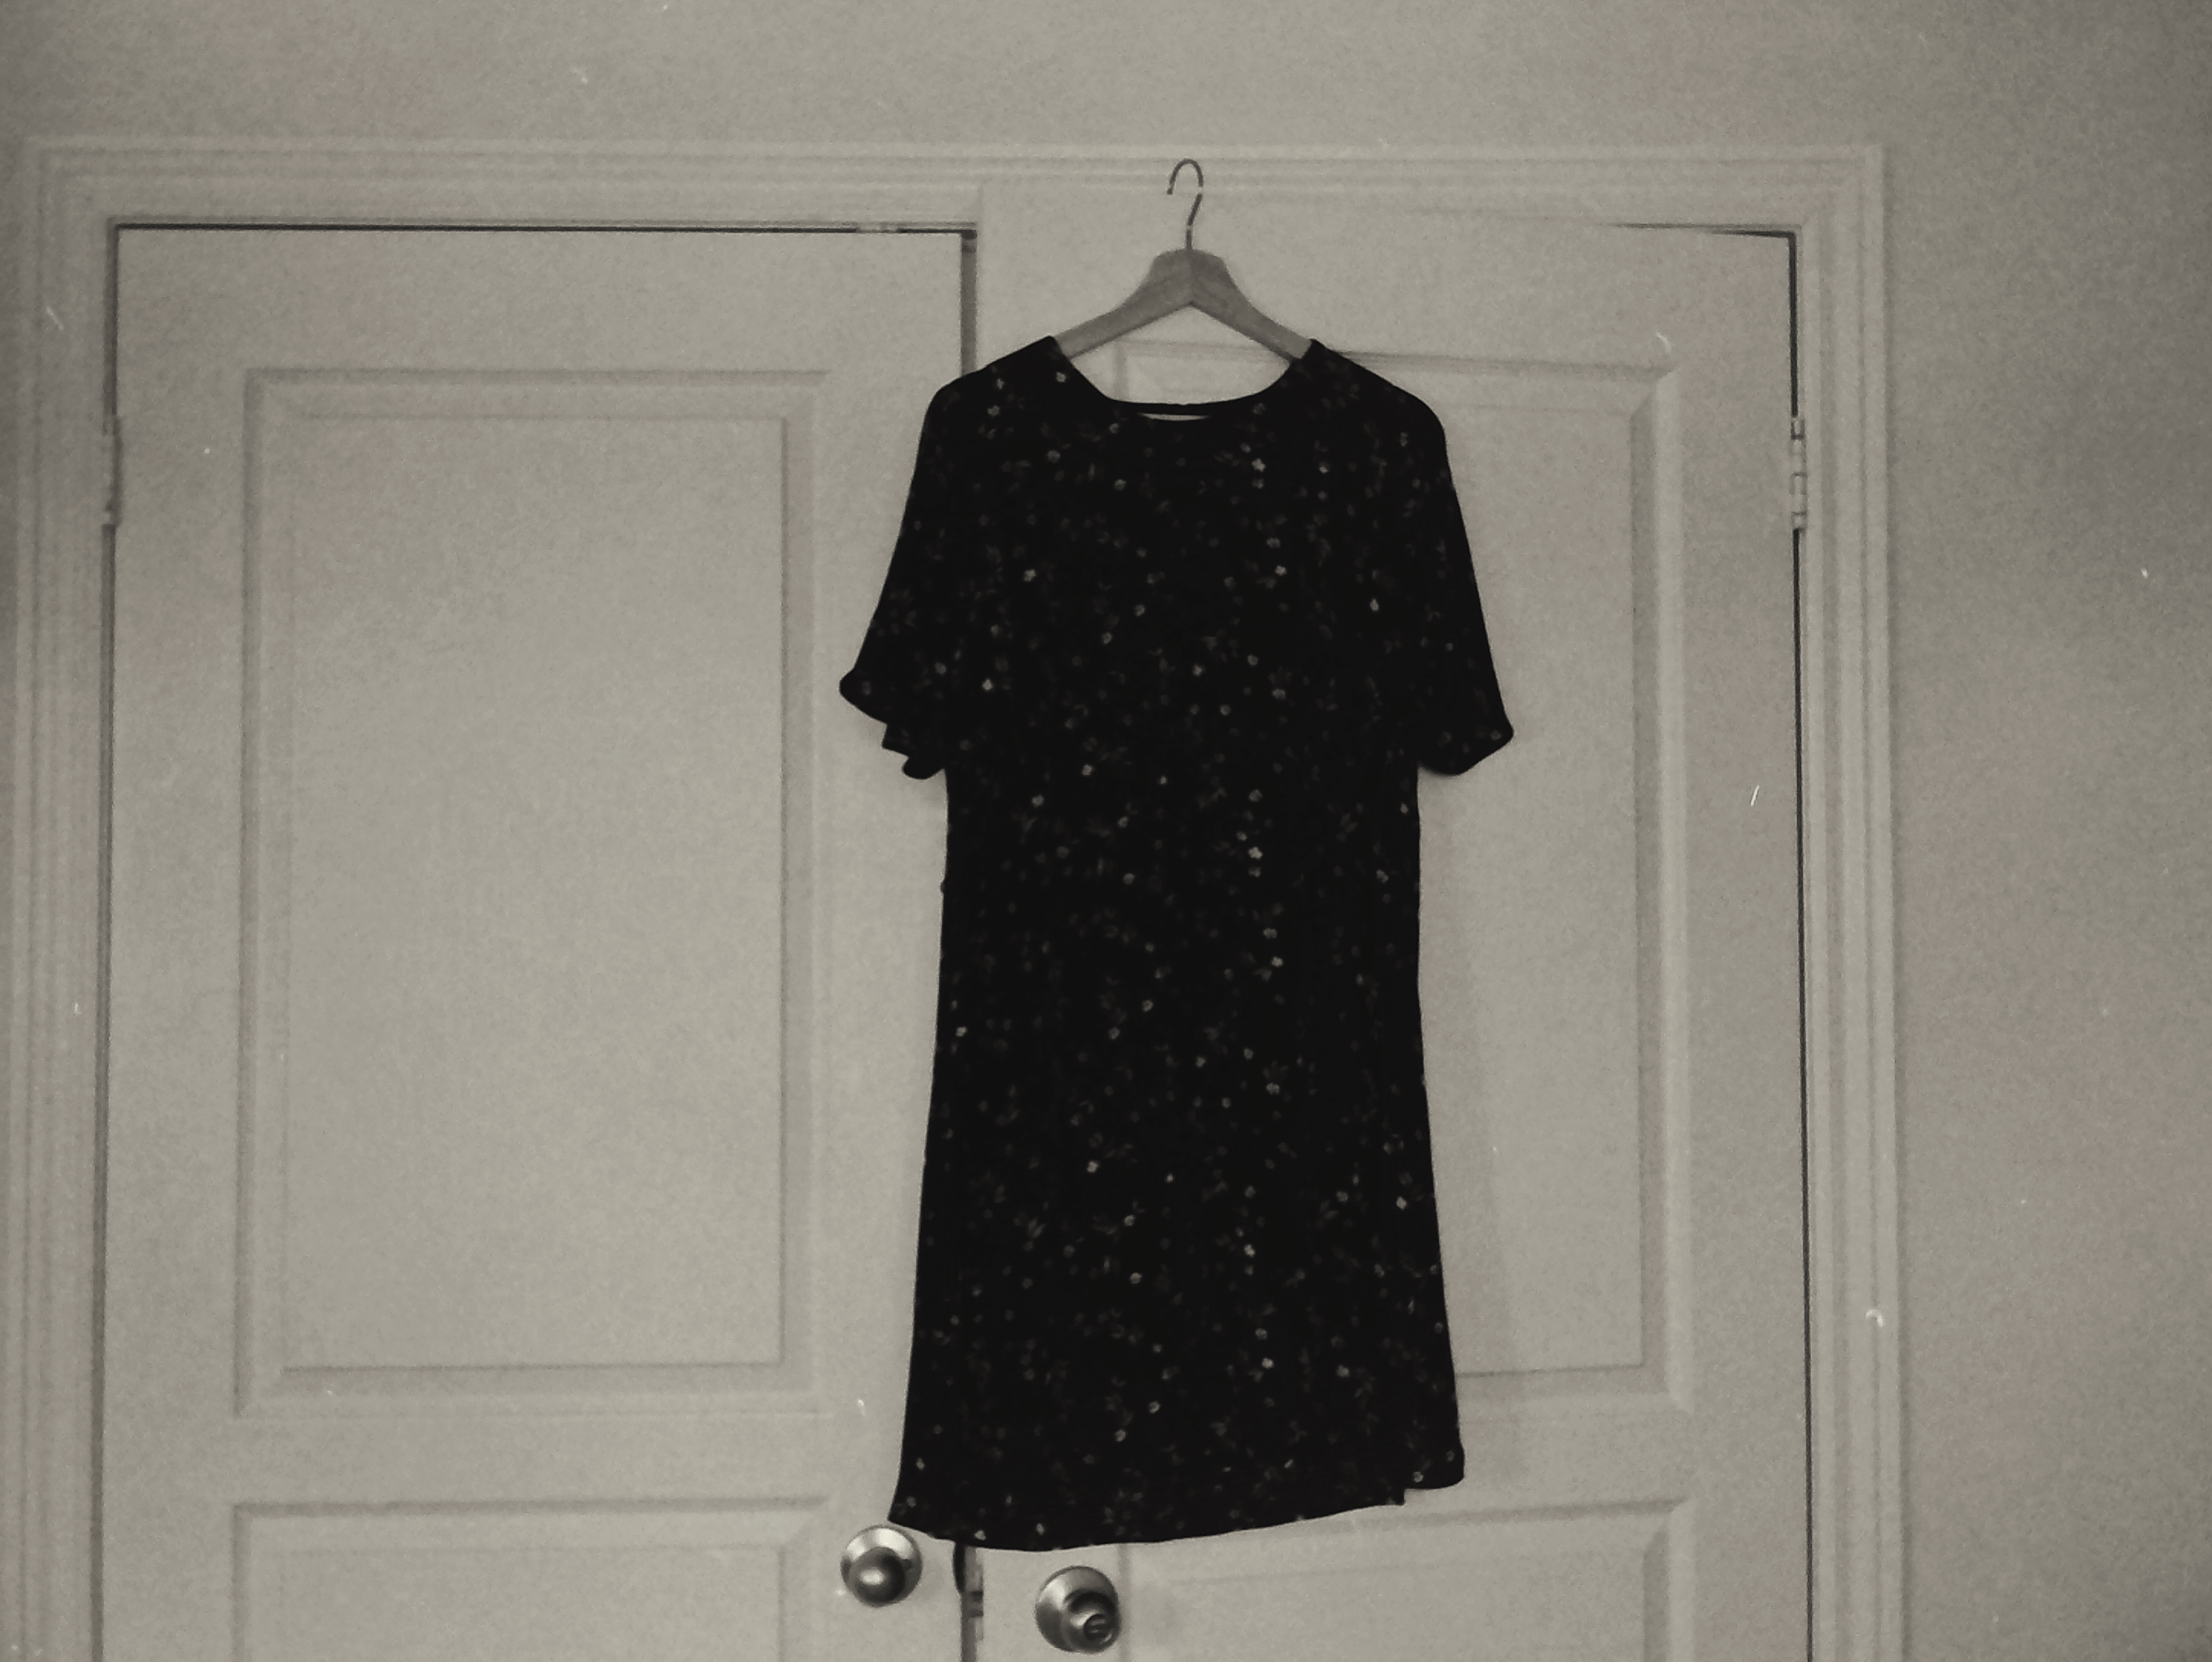 As dark as this photo may look, this black dress is one of my favourite items of clothing. The one I normally wear when I step out into this unpredictable world, socializing, meeting new people. Practicing my best mid-twenties new comer, thinking that I should be doing whatever everyone else's doing. With that comes my dating dilemma; a reminder of how I should be more out there and that first impressions can be tricky. This pandemic not only affected me financially but also took a stab at my mental wellbeing. The uncertainties of life has always caused me anxiety but I'm determined to accept this inevitable transition. Being in isolation really triggered my mental health in a way where I could now envision being lonely for a lot longer than I anticipated. I started taking photos of certain objects that reminded me of a better time, more of a way to overcome negativity and use this time to be creative. I know many share this story, my story and can relate to it in similar ways.